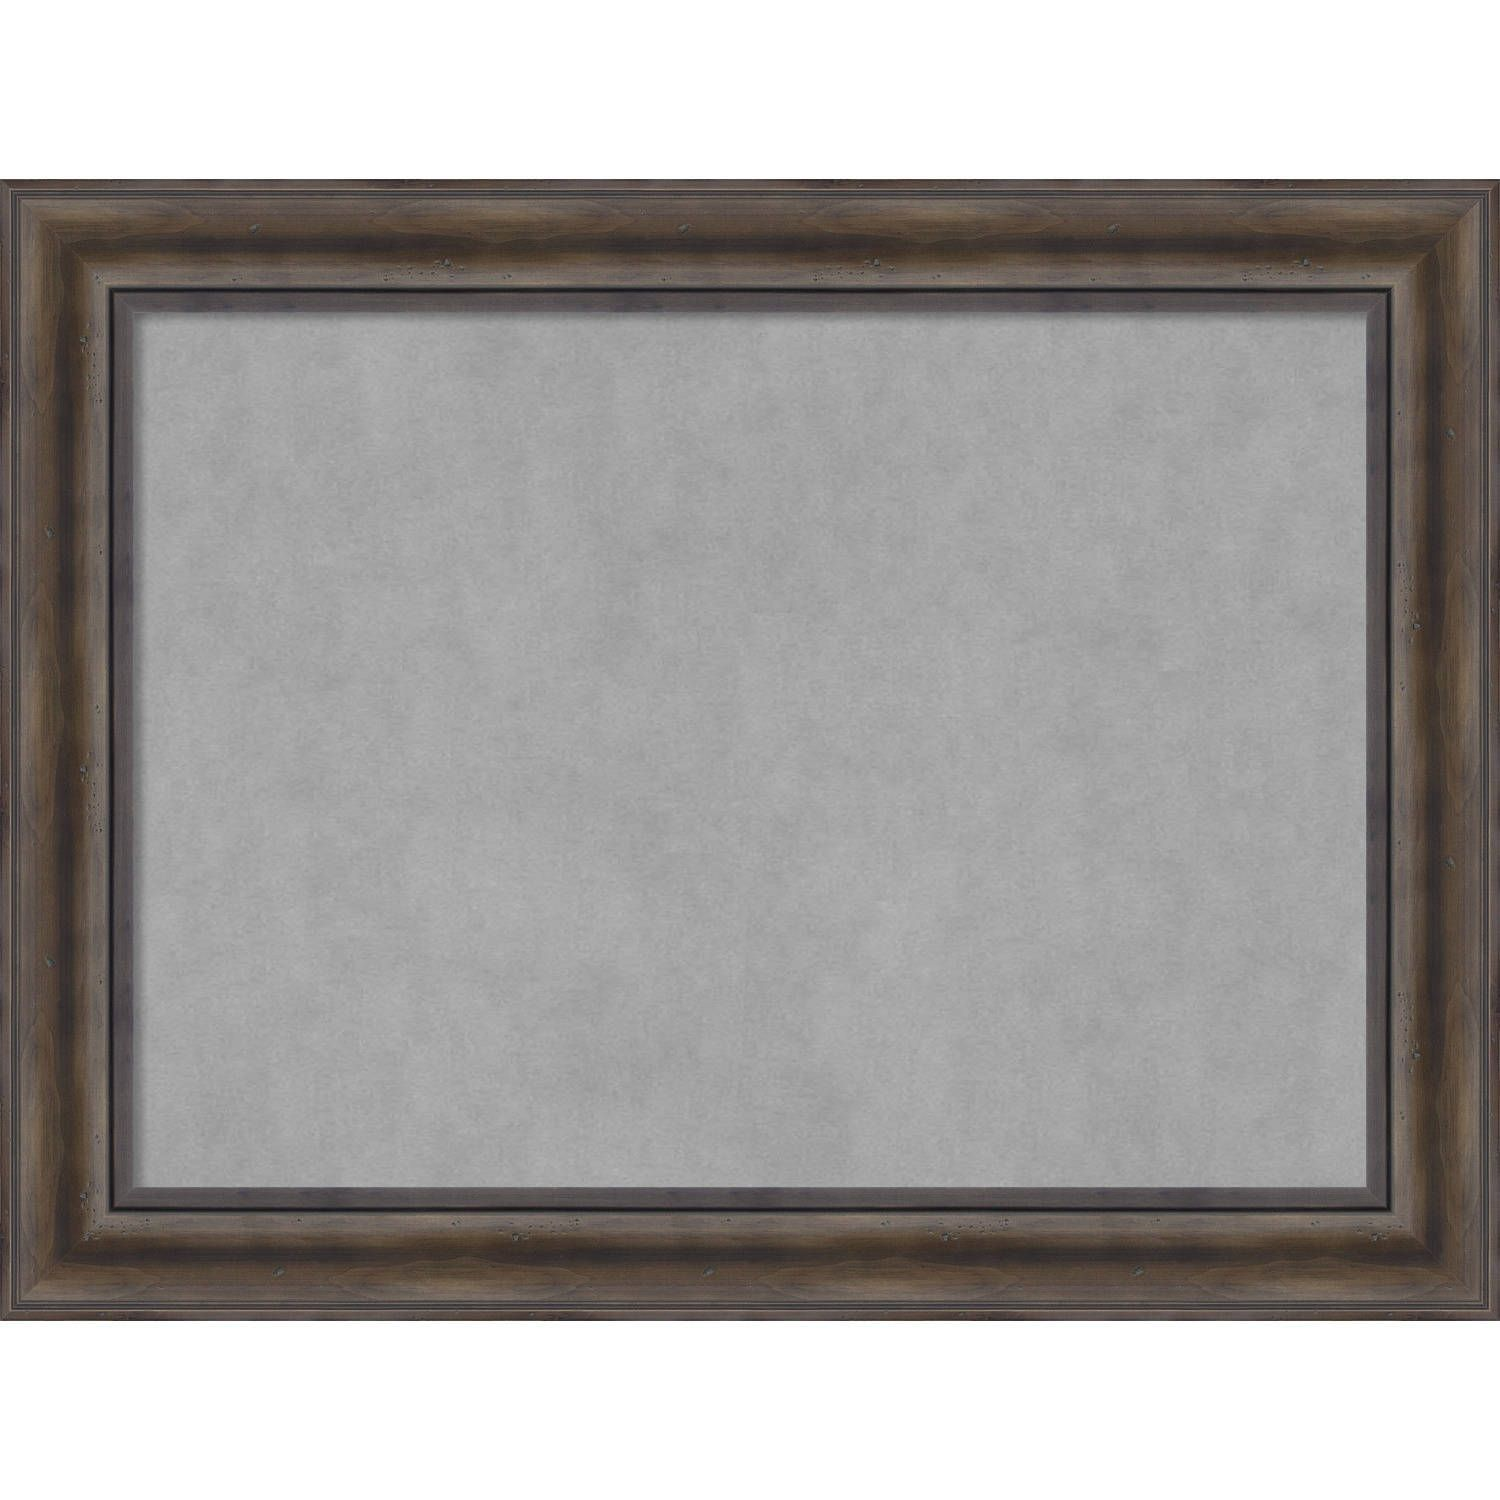 Magnetic Board Rustic Pine Large 34 X 26 Inch Brown